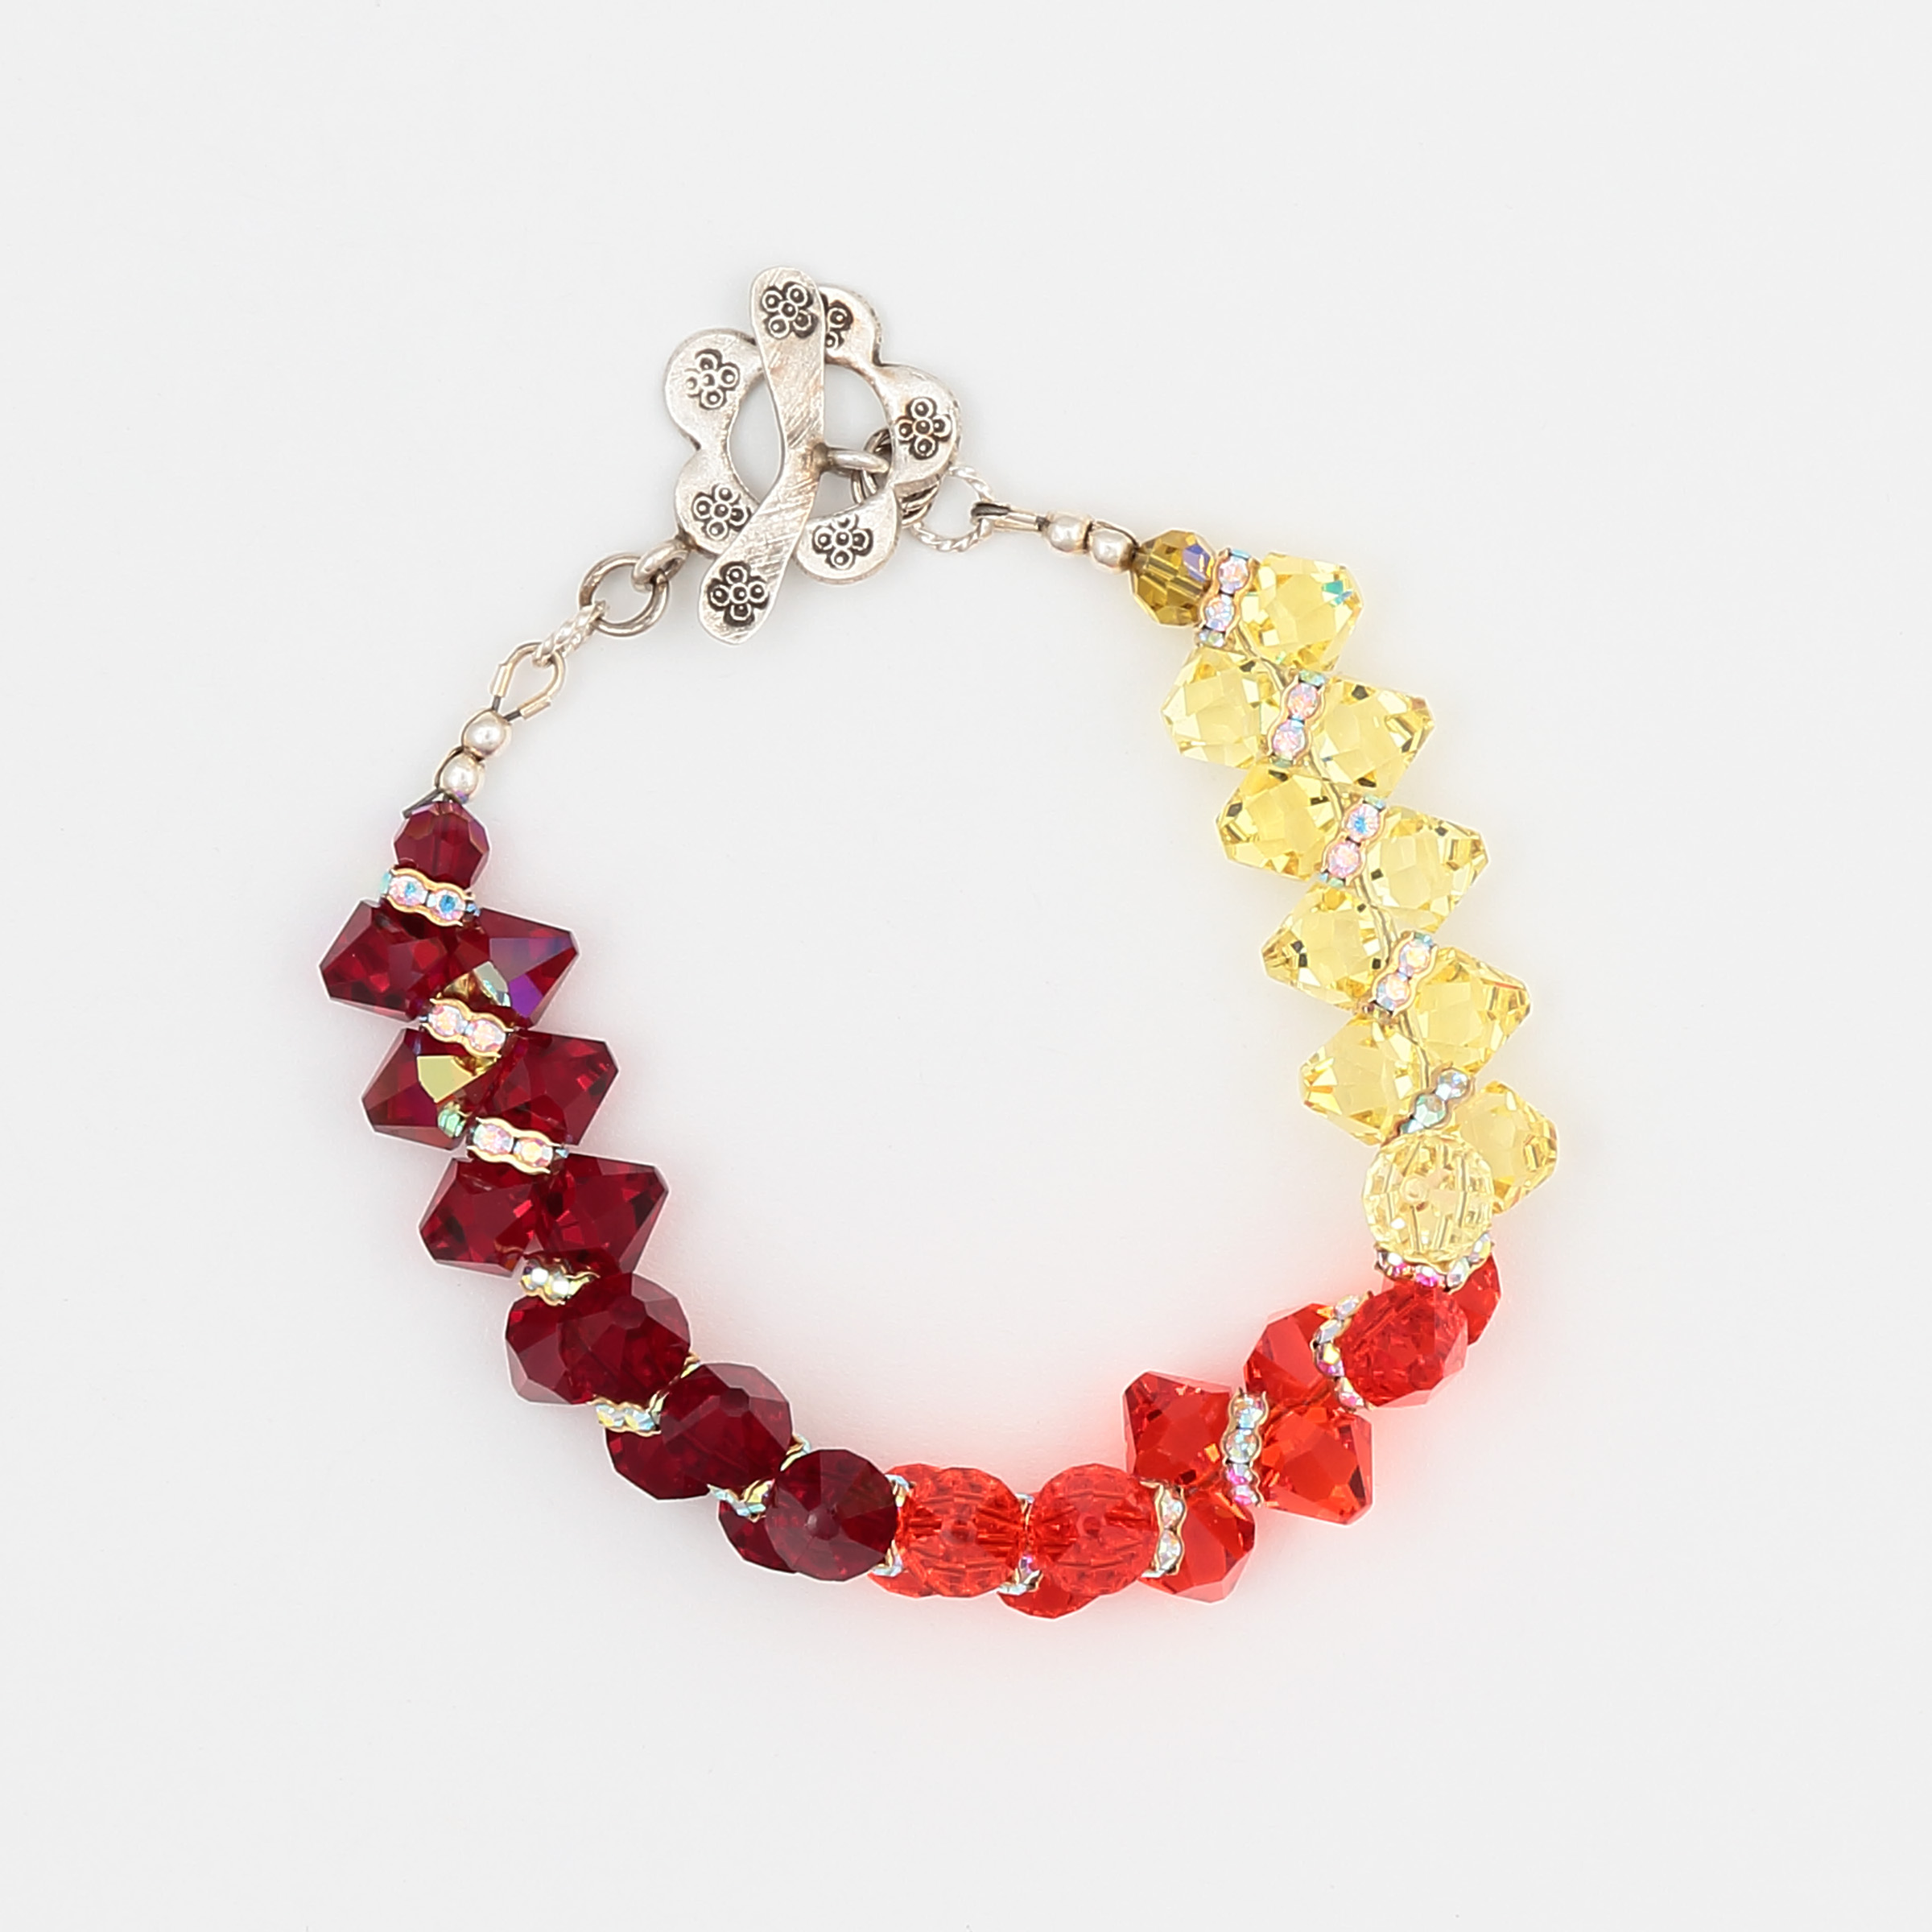 Pulse Bracelet- orange, yellow, red colors of Swarovski crystals with sterling silver clasp